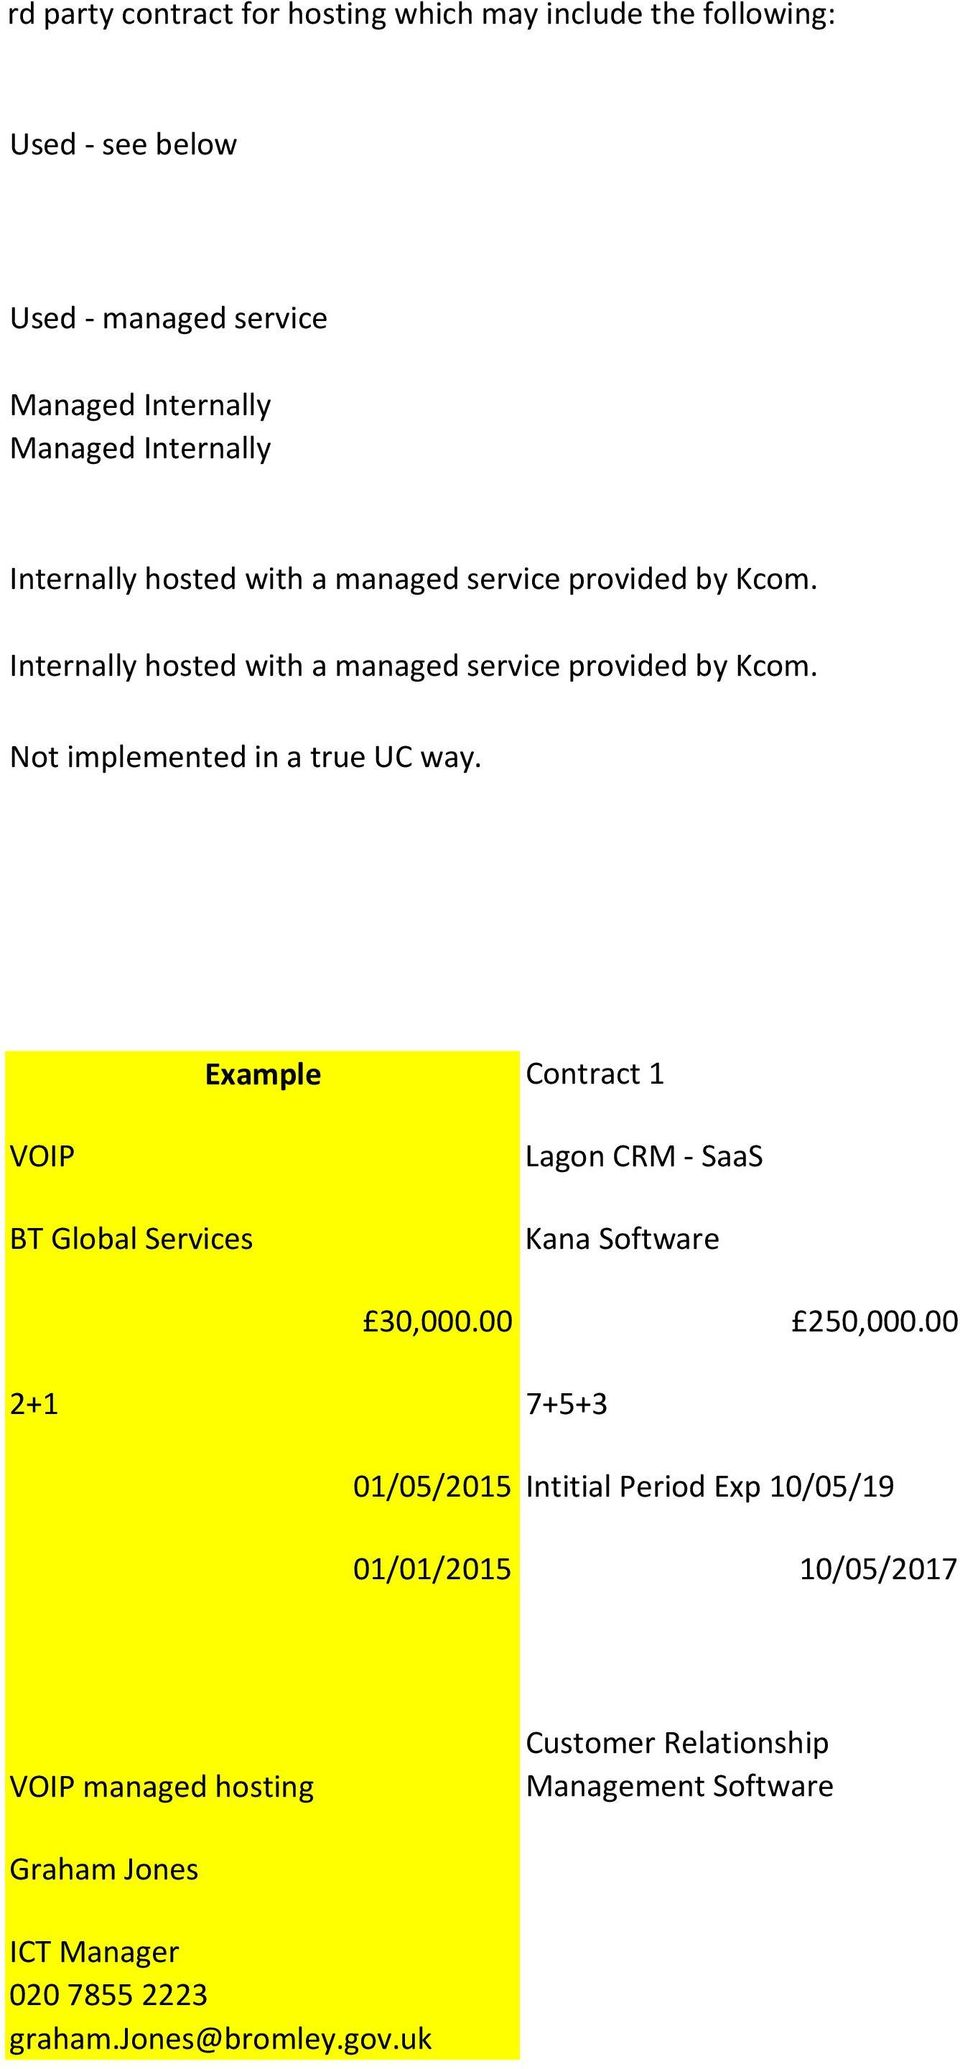 Example Contract 1 VOIP BT Global Services Lagon CRM - SaaS Kana Software 30,000.00 250,000.